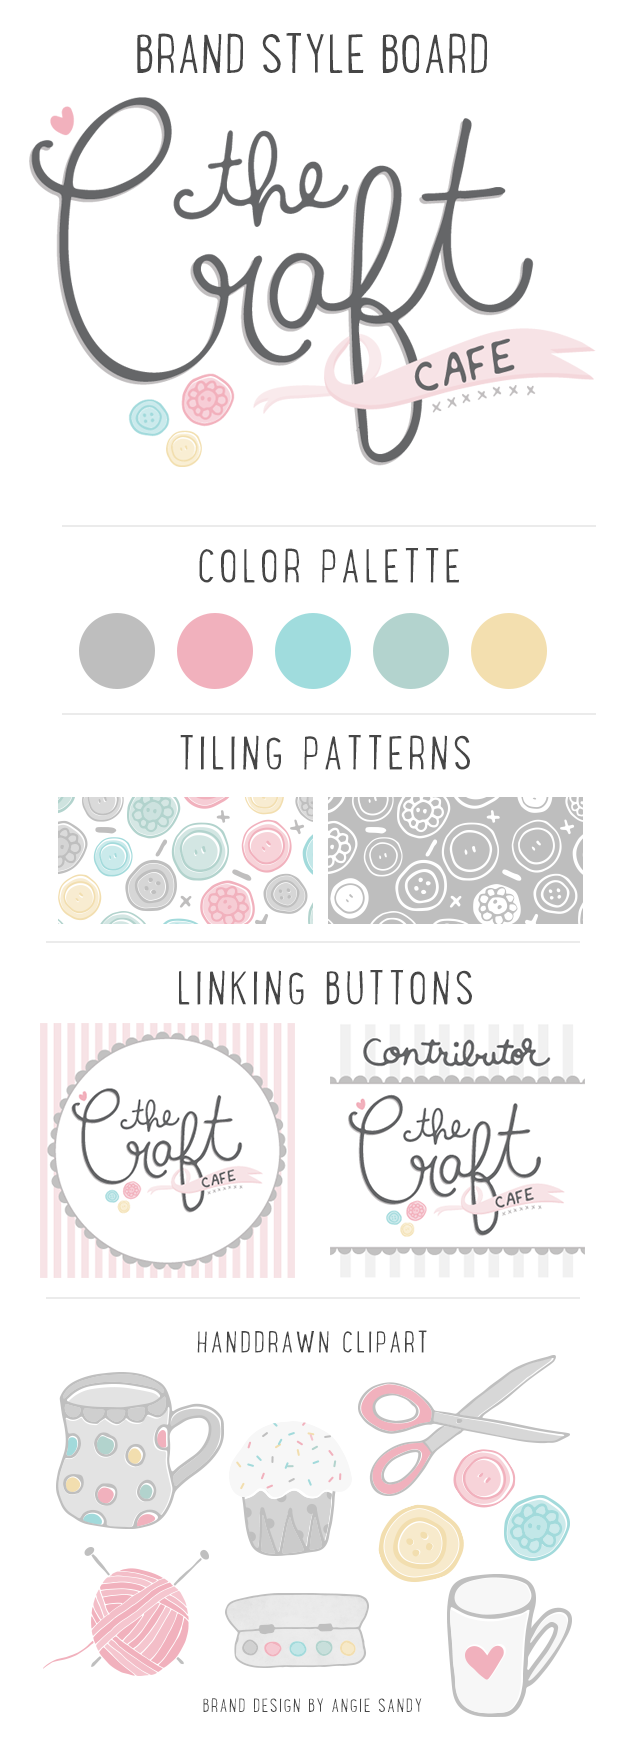 The Craft Cafe Brand | Angie Sandy Art Licensing & Design #branding #angiesandy #handlettering